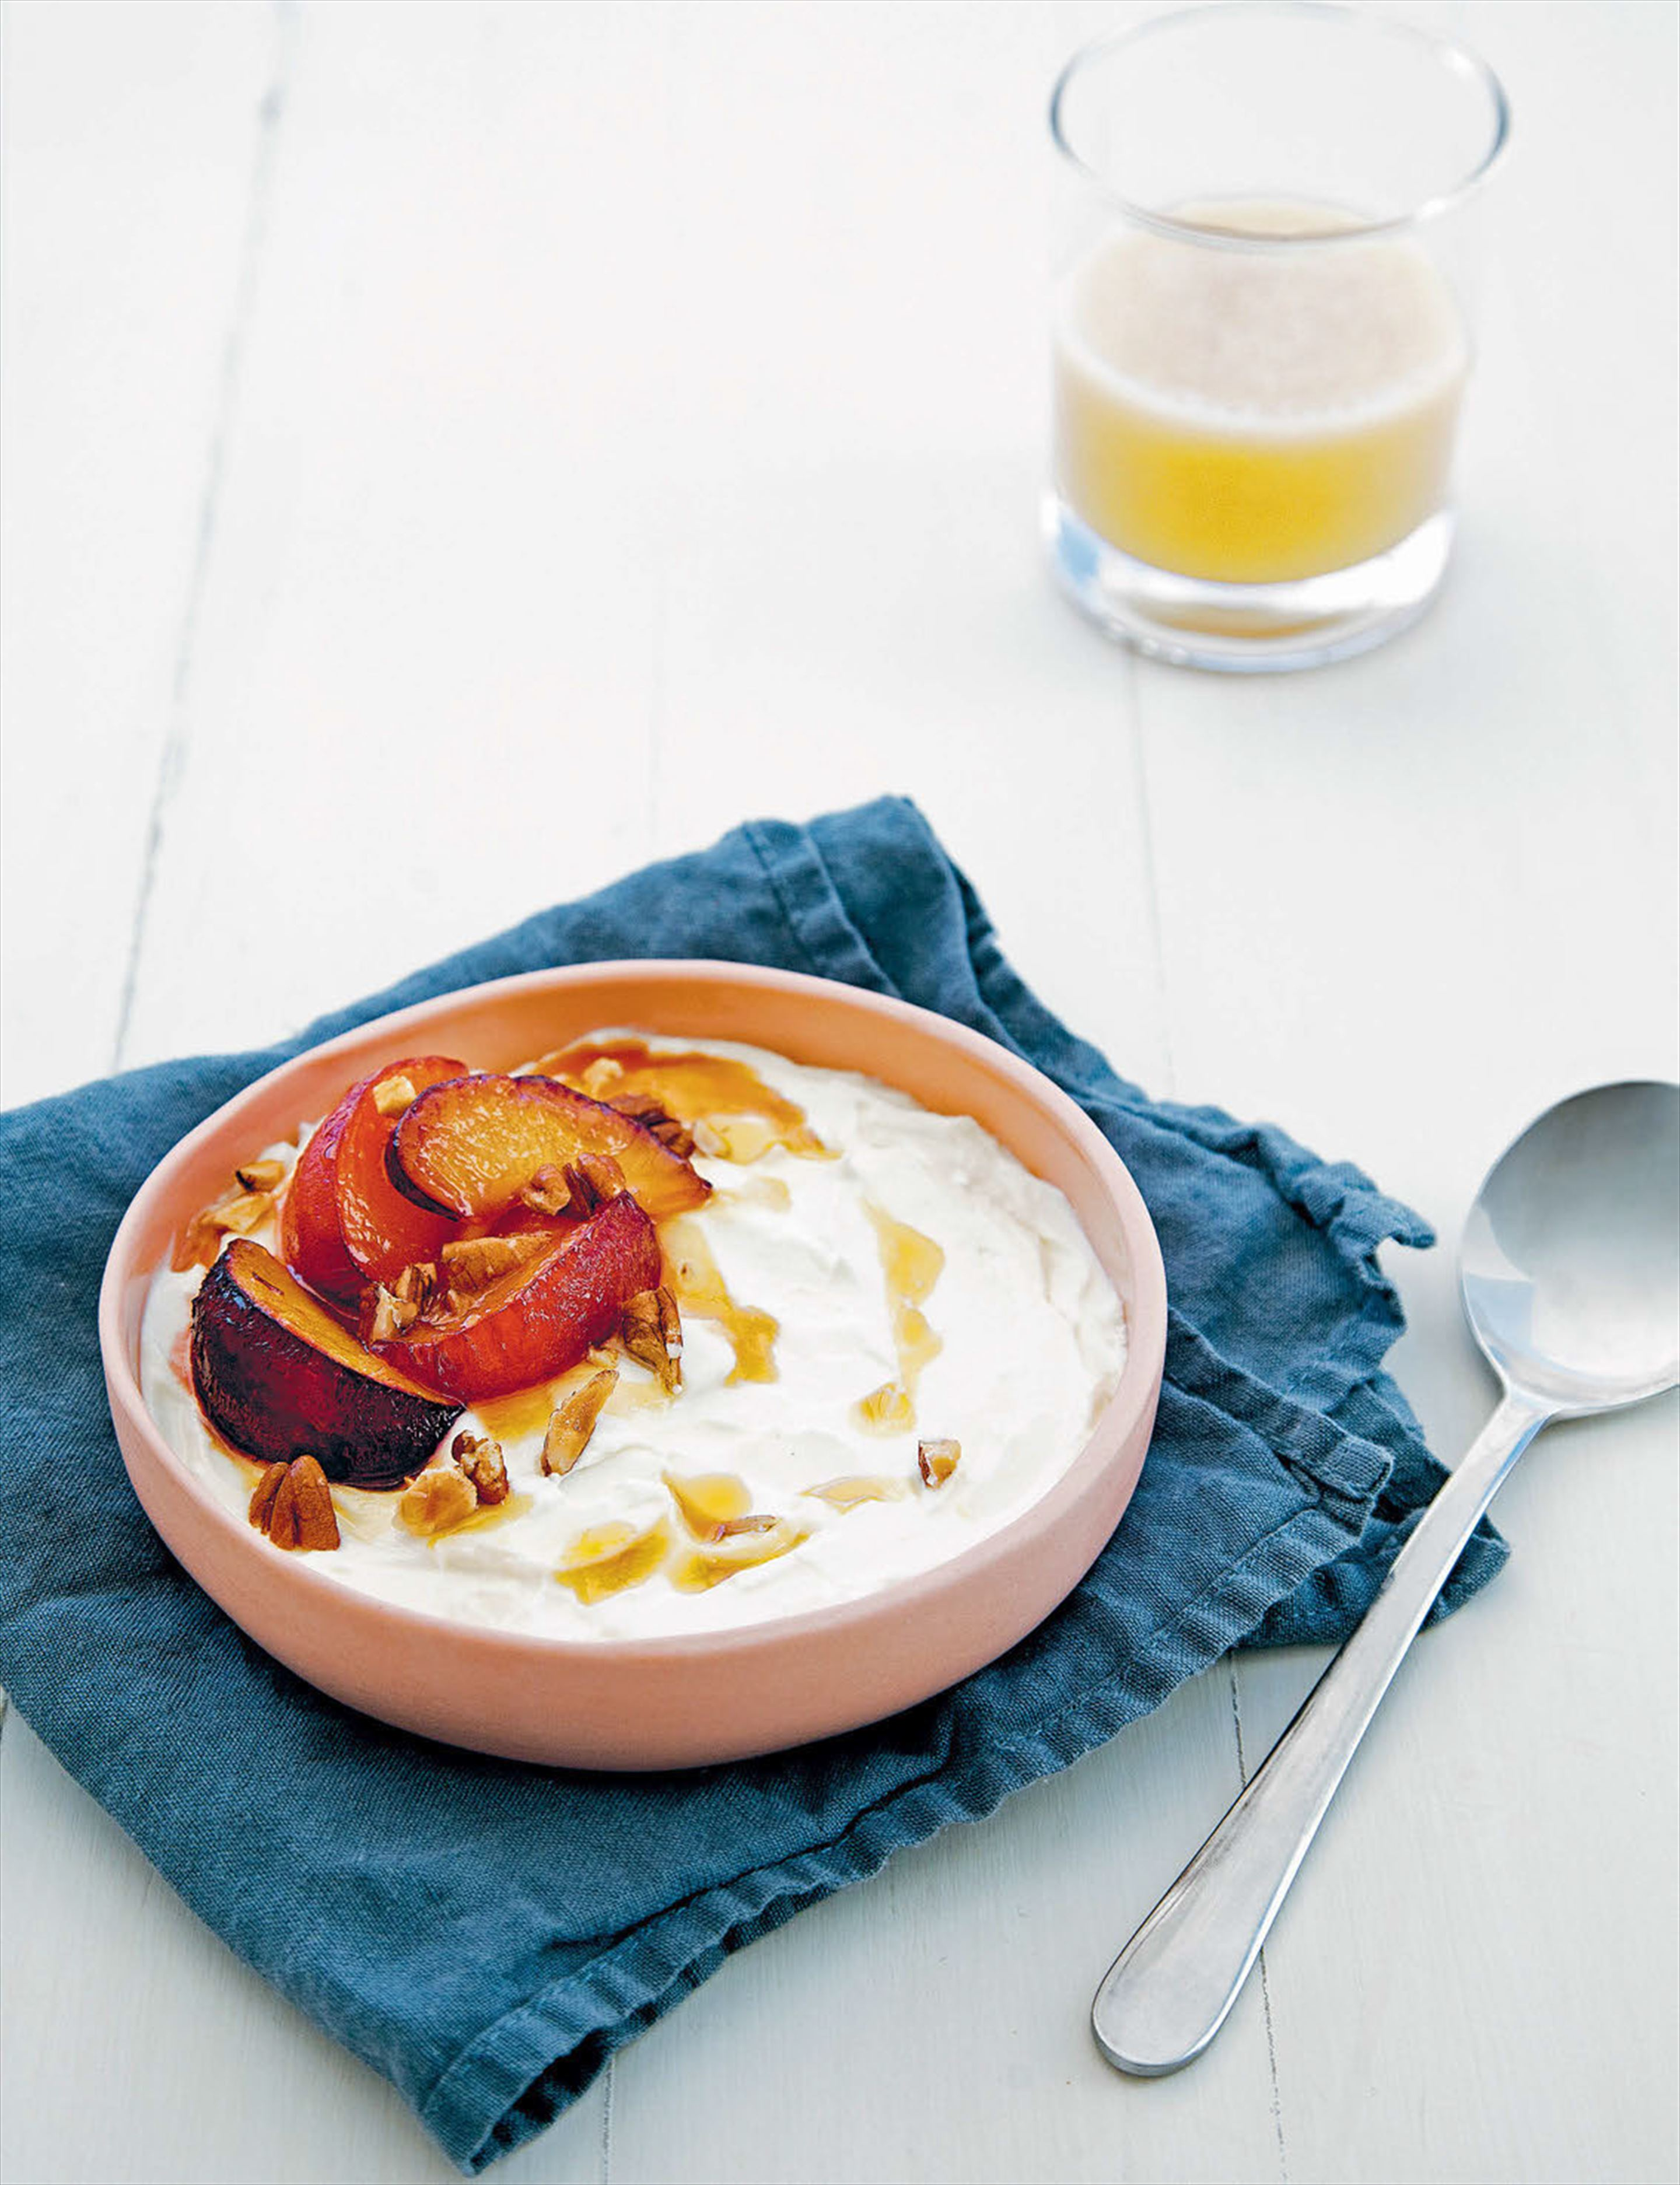 Coconut yoghurt with stewed nectarines